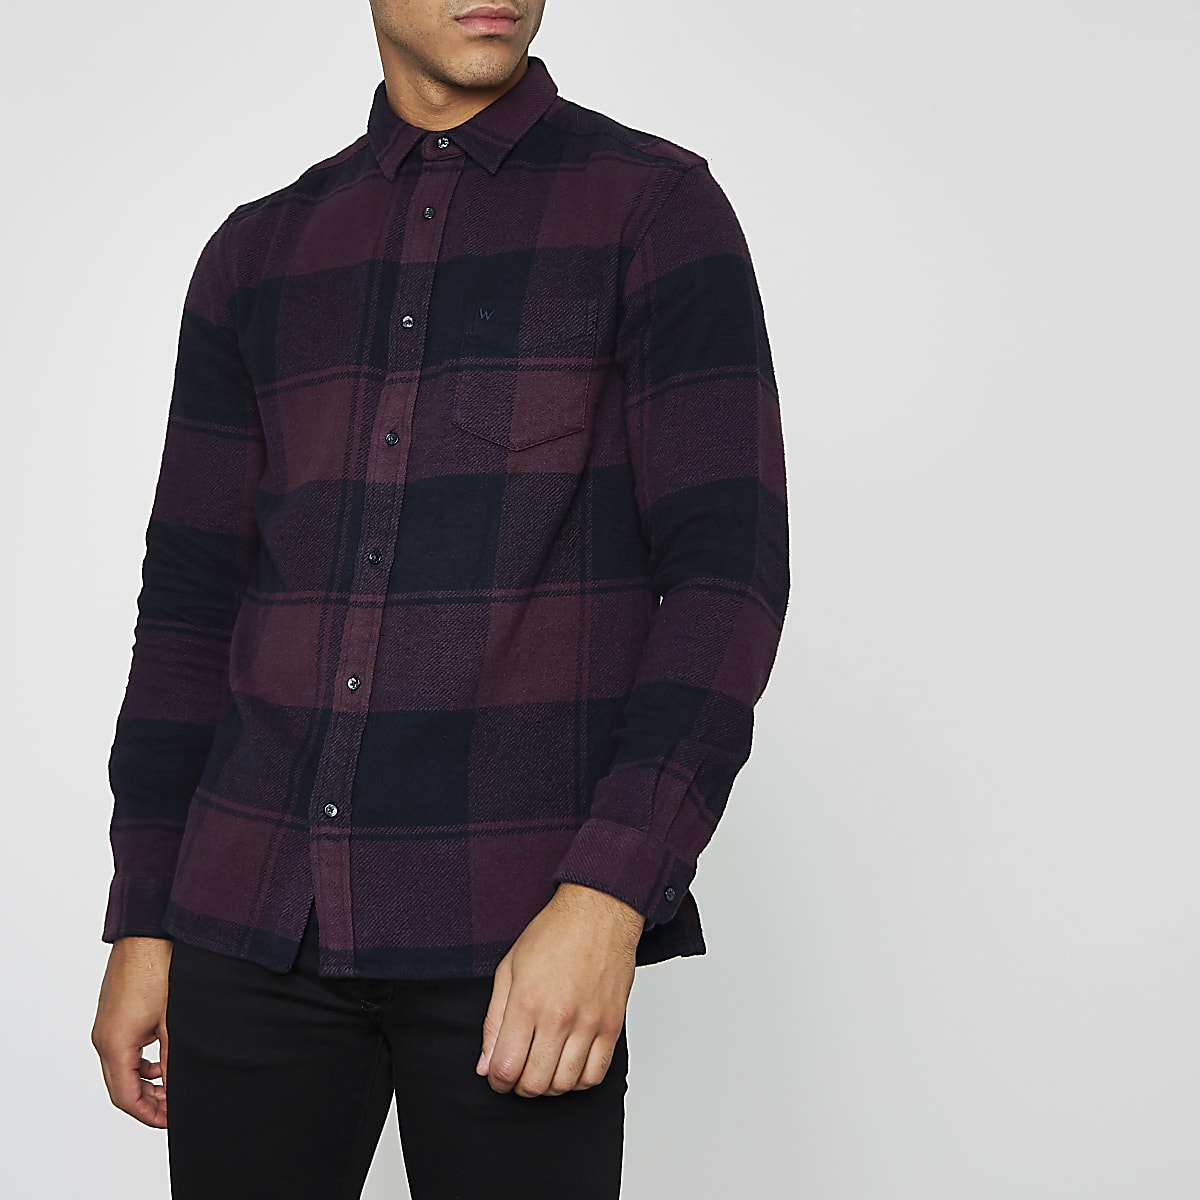 Wrangler burgundy long sleeve check shirt